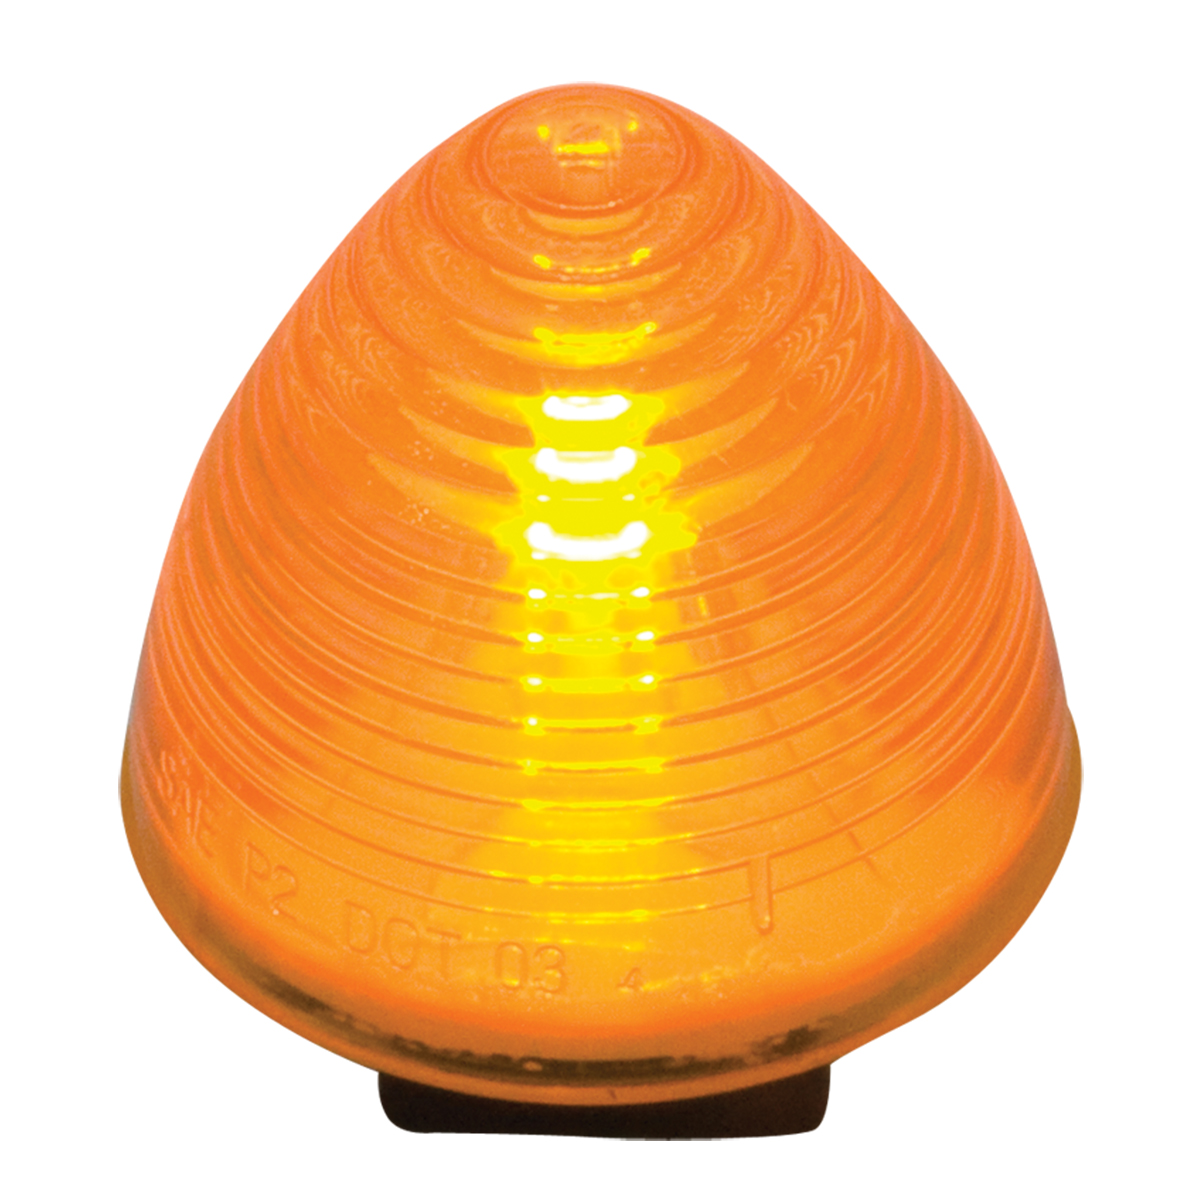 "#80942 2"" Incandescent Beehive Amber/Amber Light"